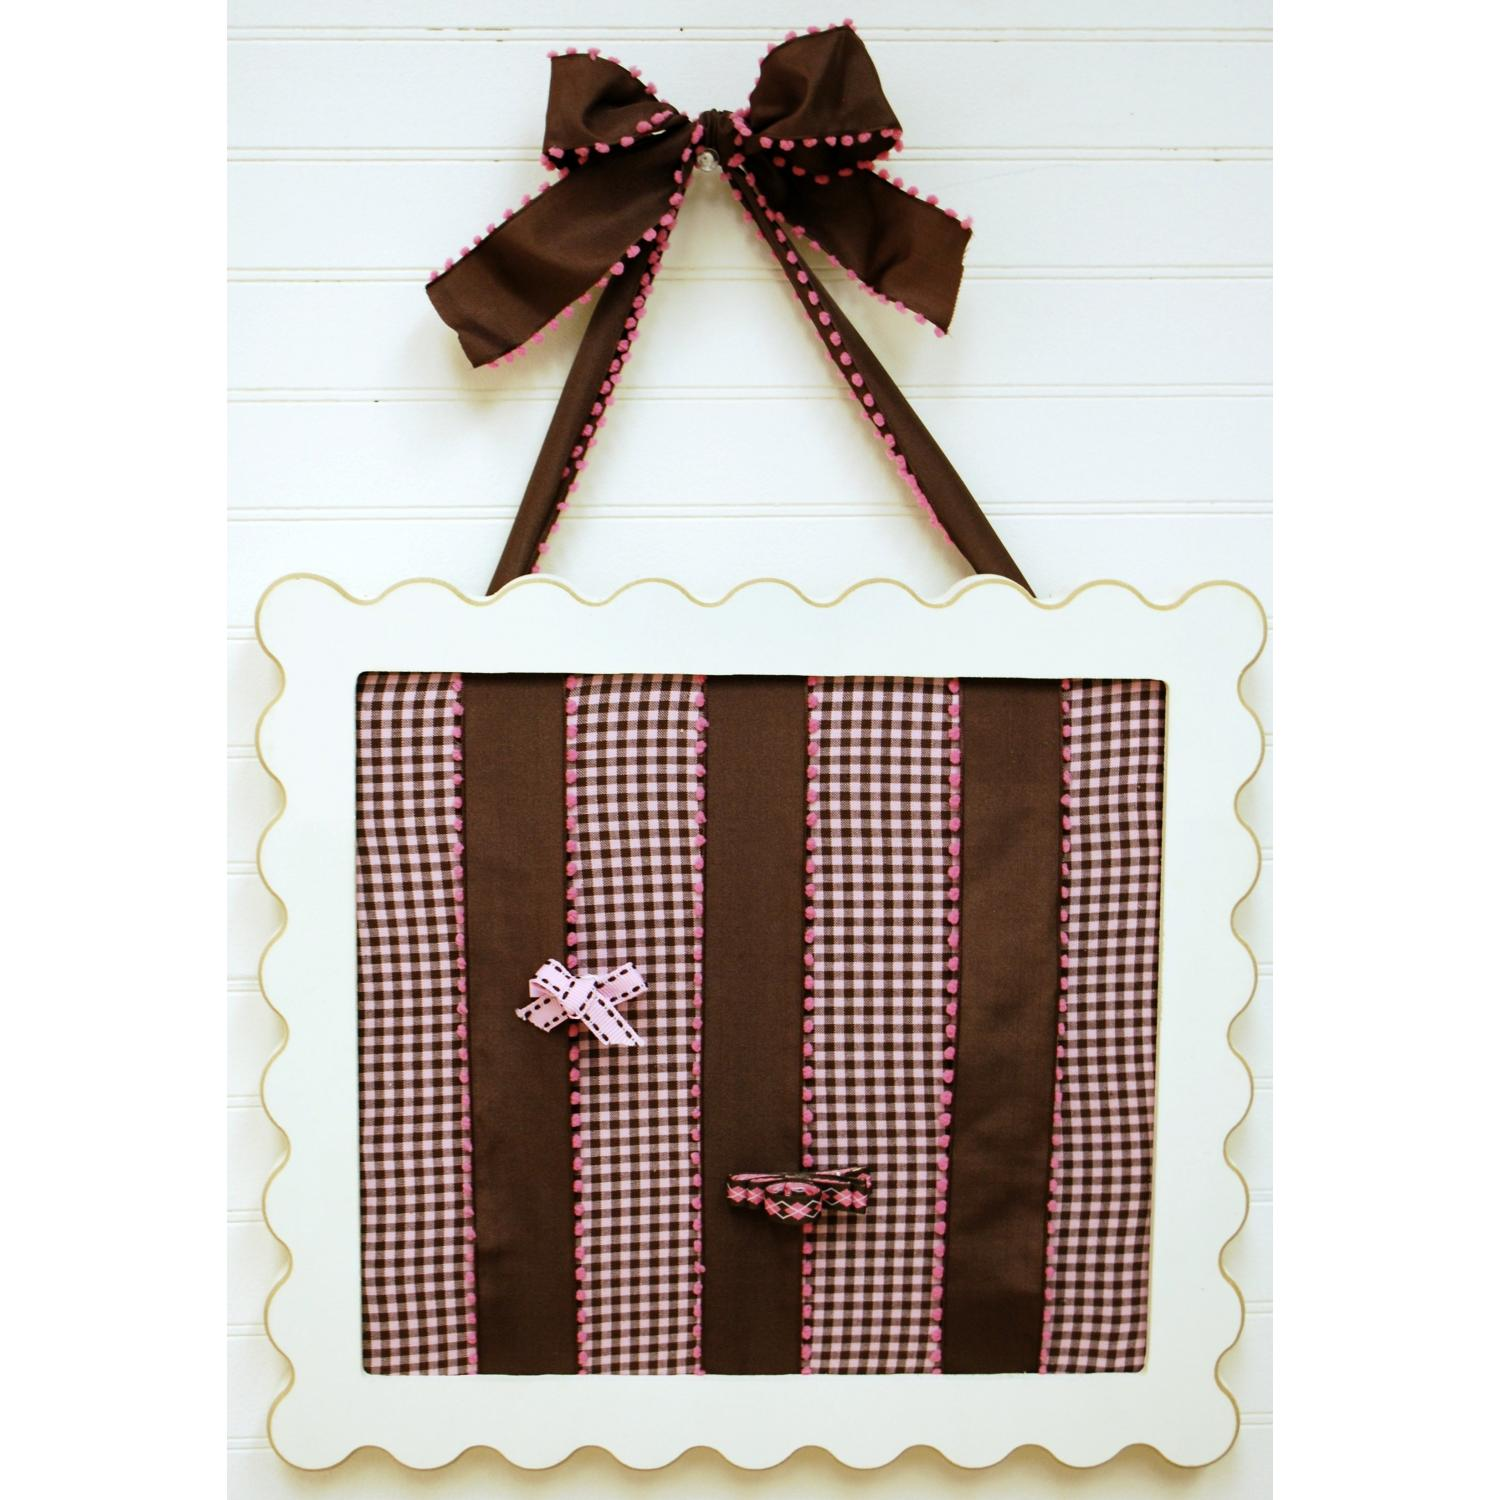 New Arrivals Barrette Holder - Pink And Chocolate Gingham With Brown Pink Pom Pom Ribbon